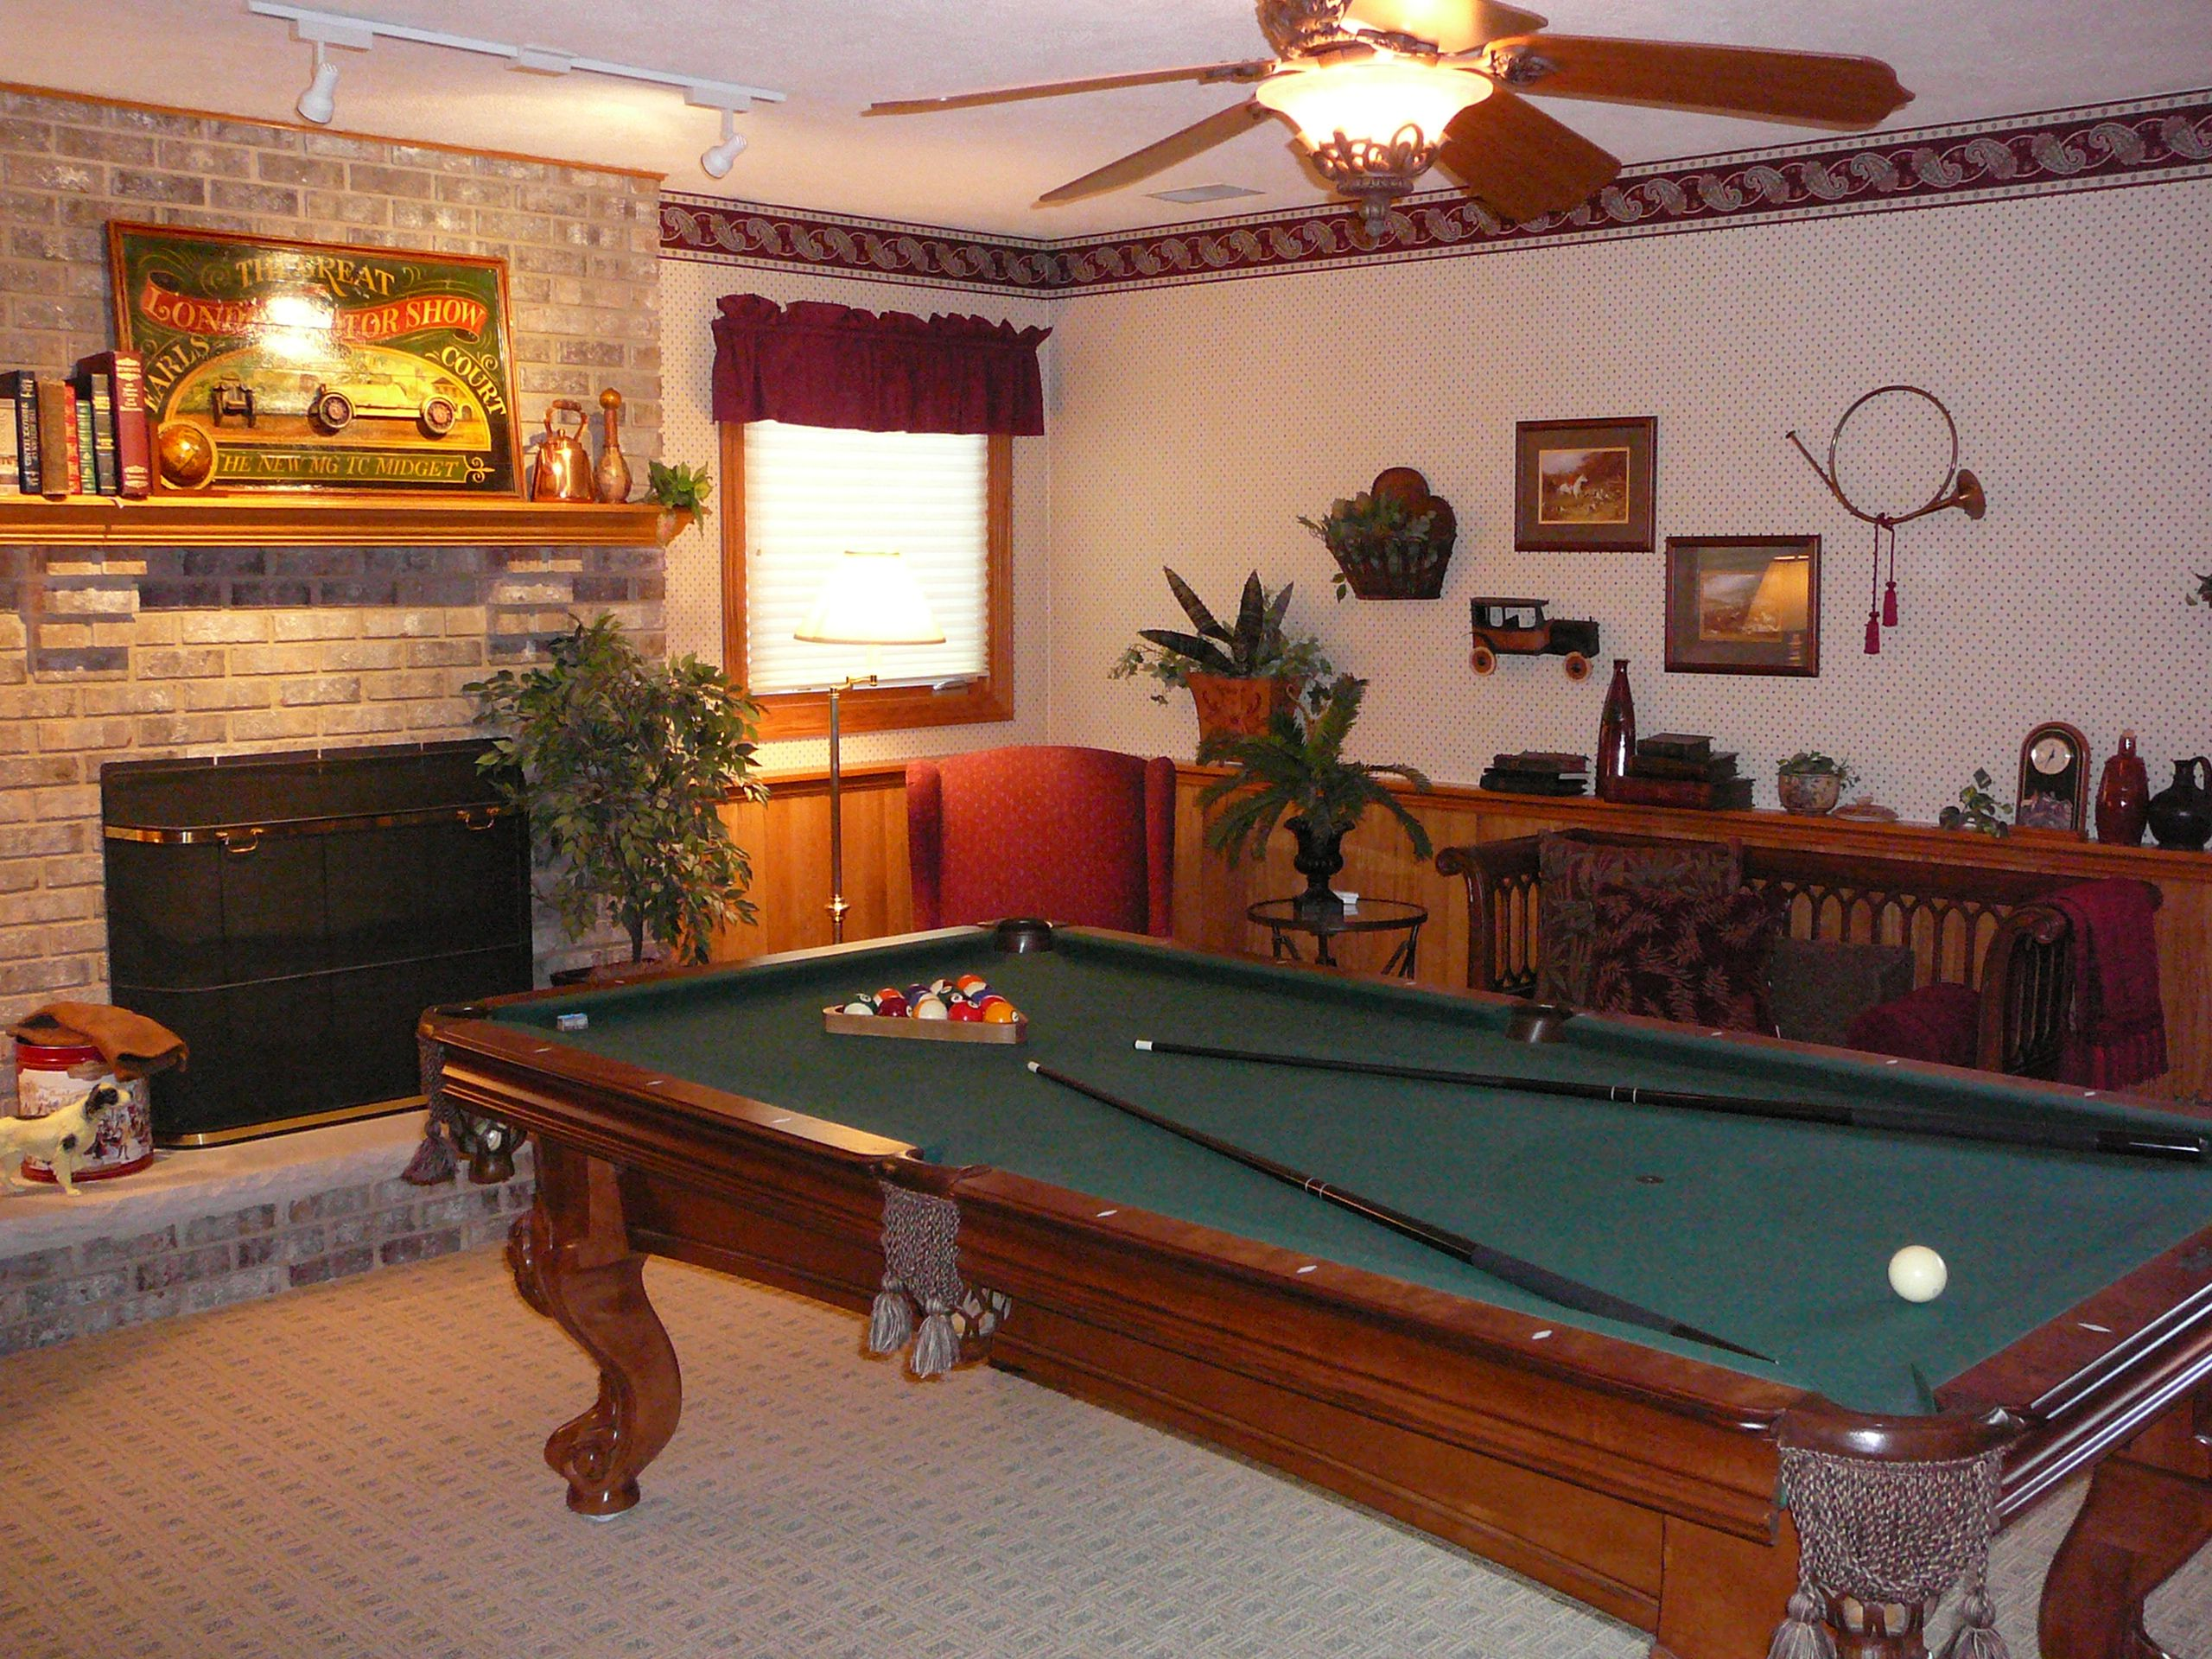 how to refelt a pool table with glue